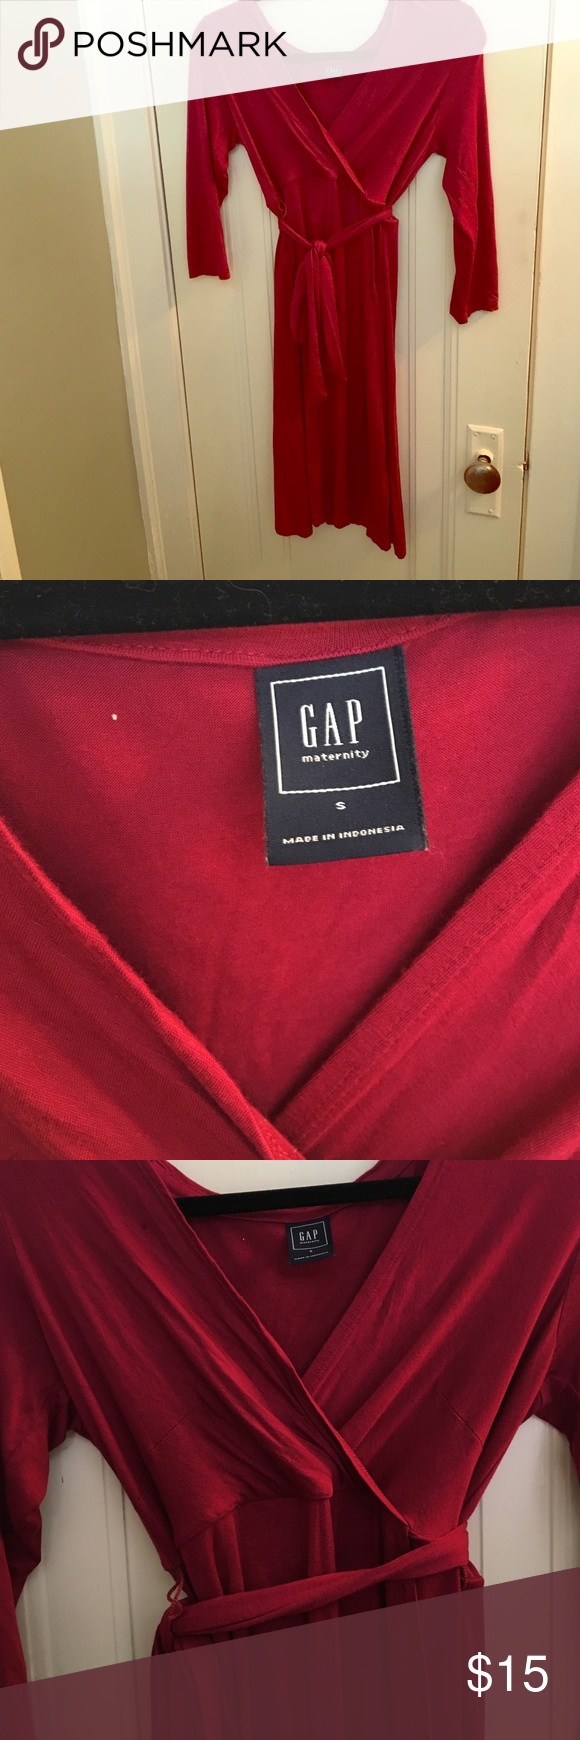 Gap maternity dress maternity dresses customer support and delivery gap maternity dress ombrellifo Gallery